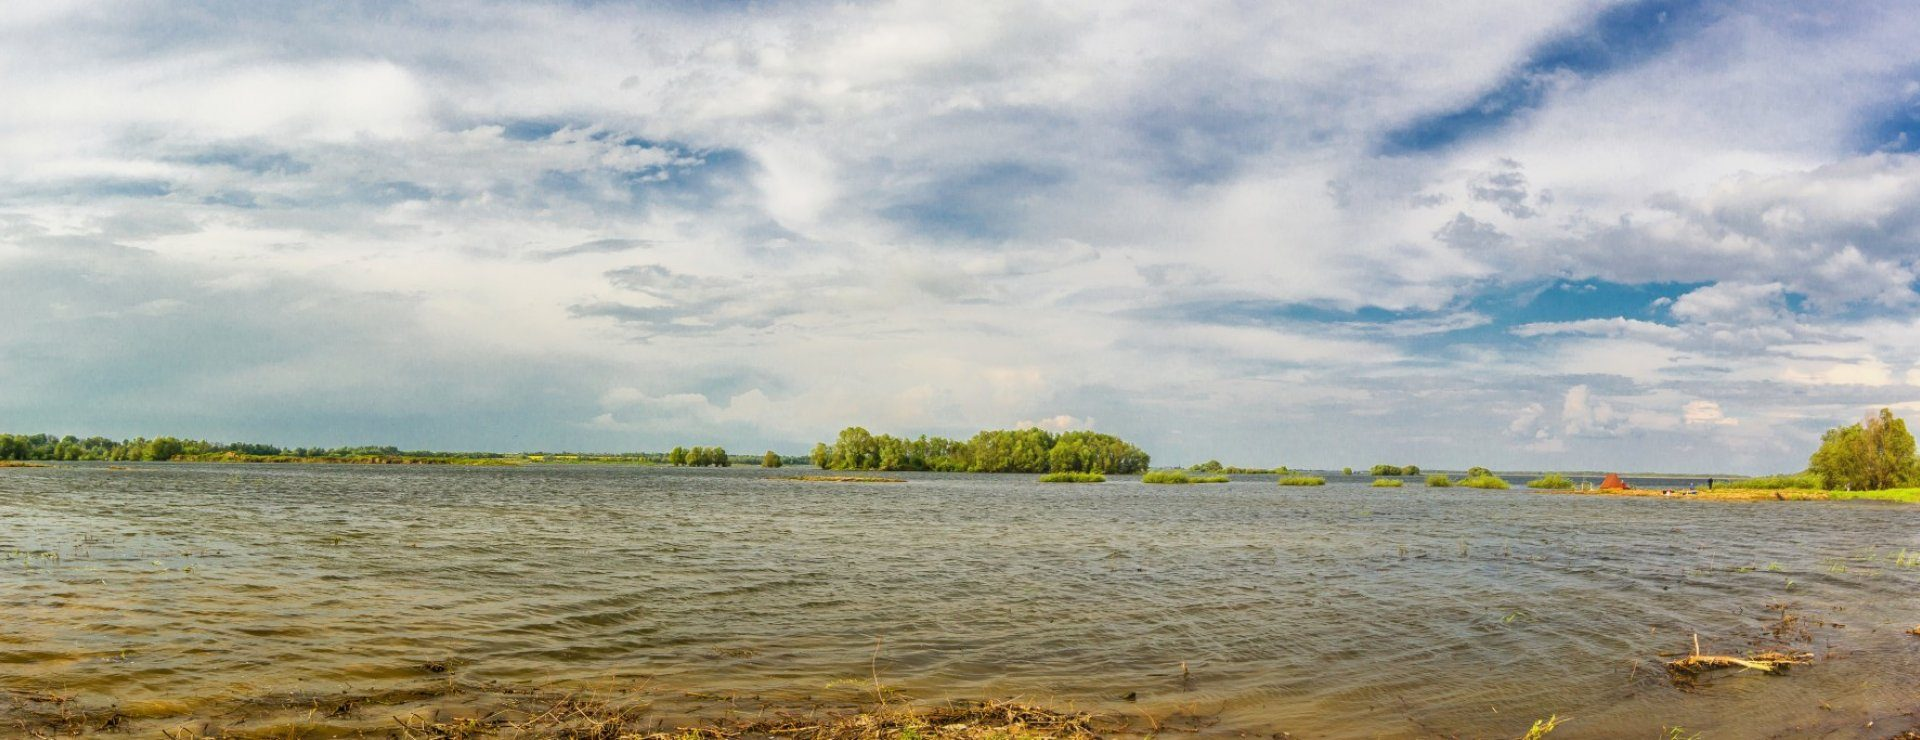 The Mietków Lagoon